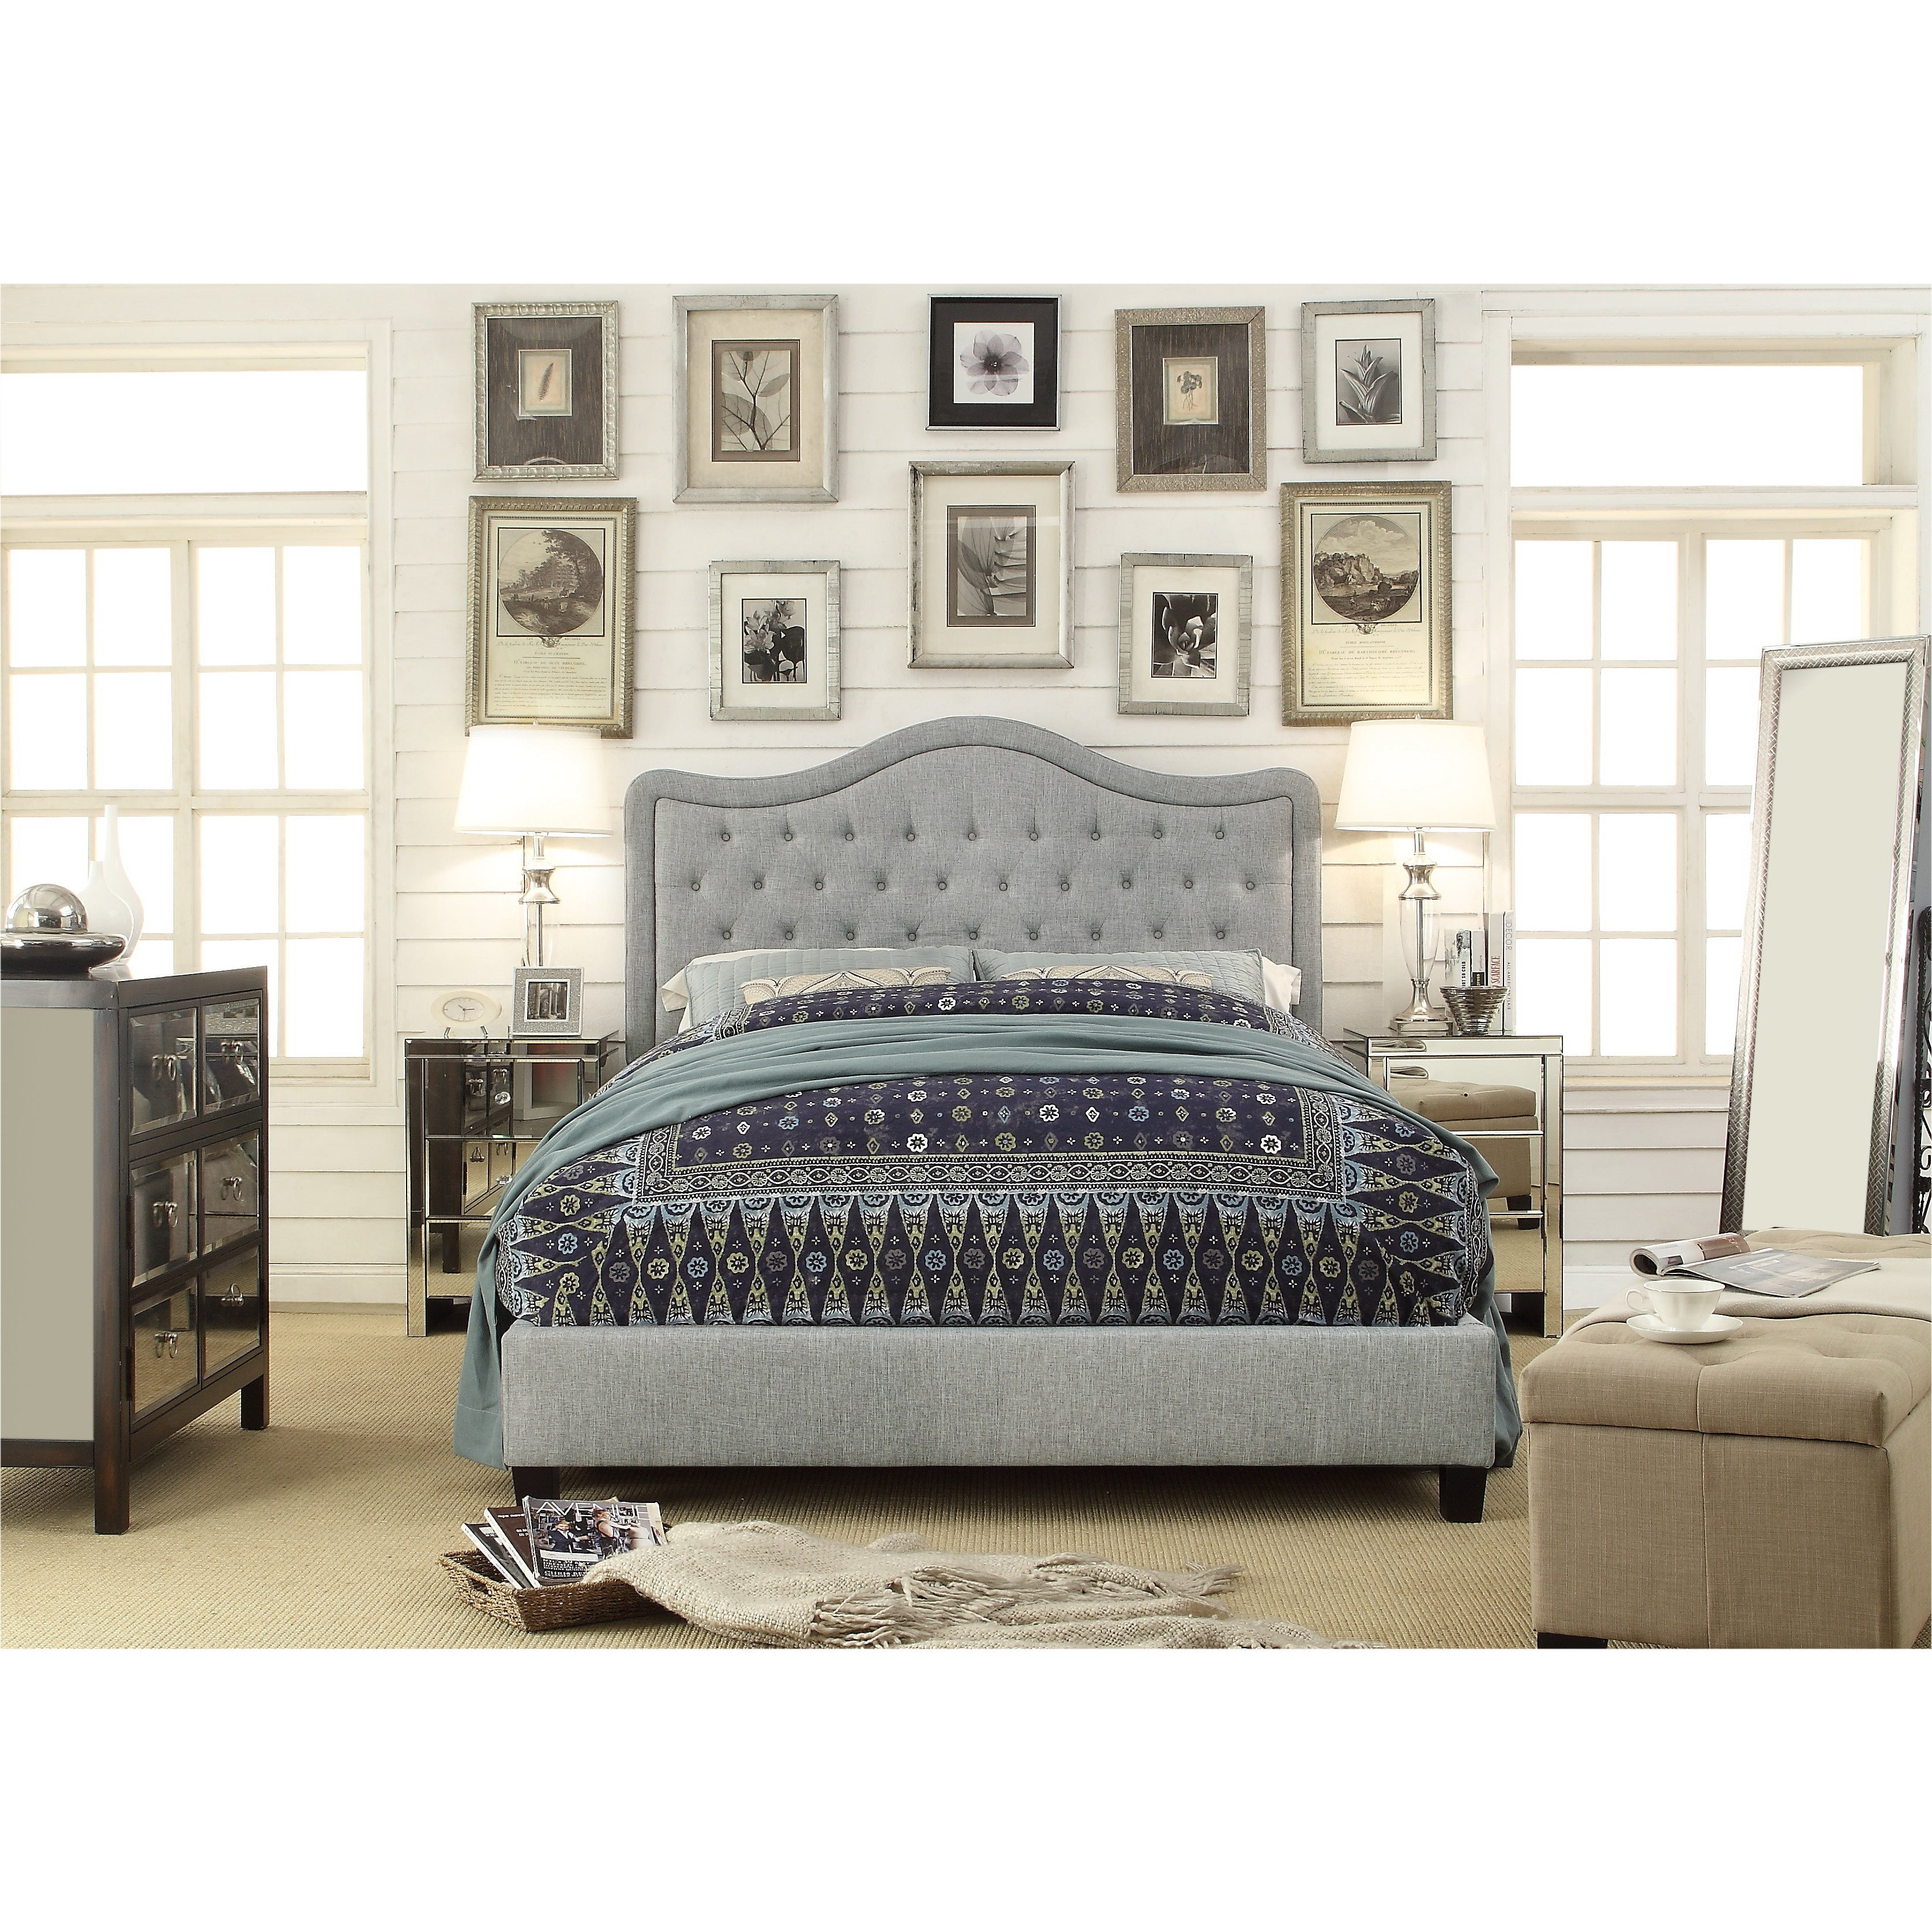 Adella Linen Tufted Upholstered Queen Size Bed Frame (Grey)